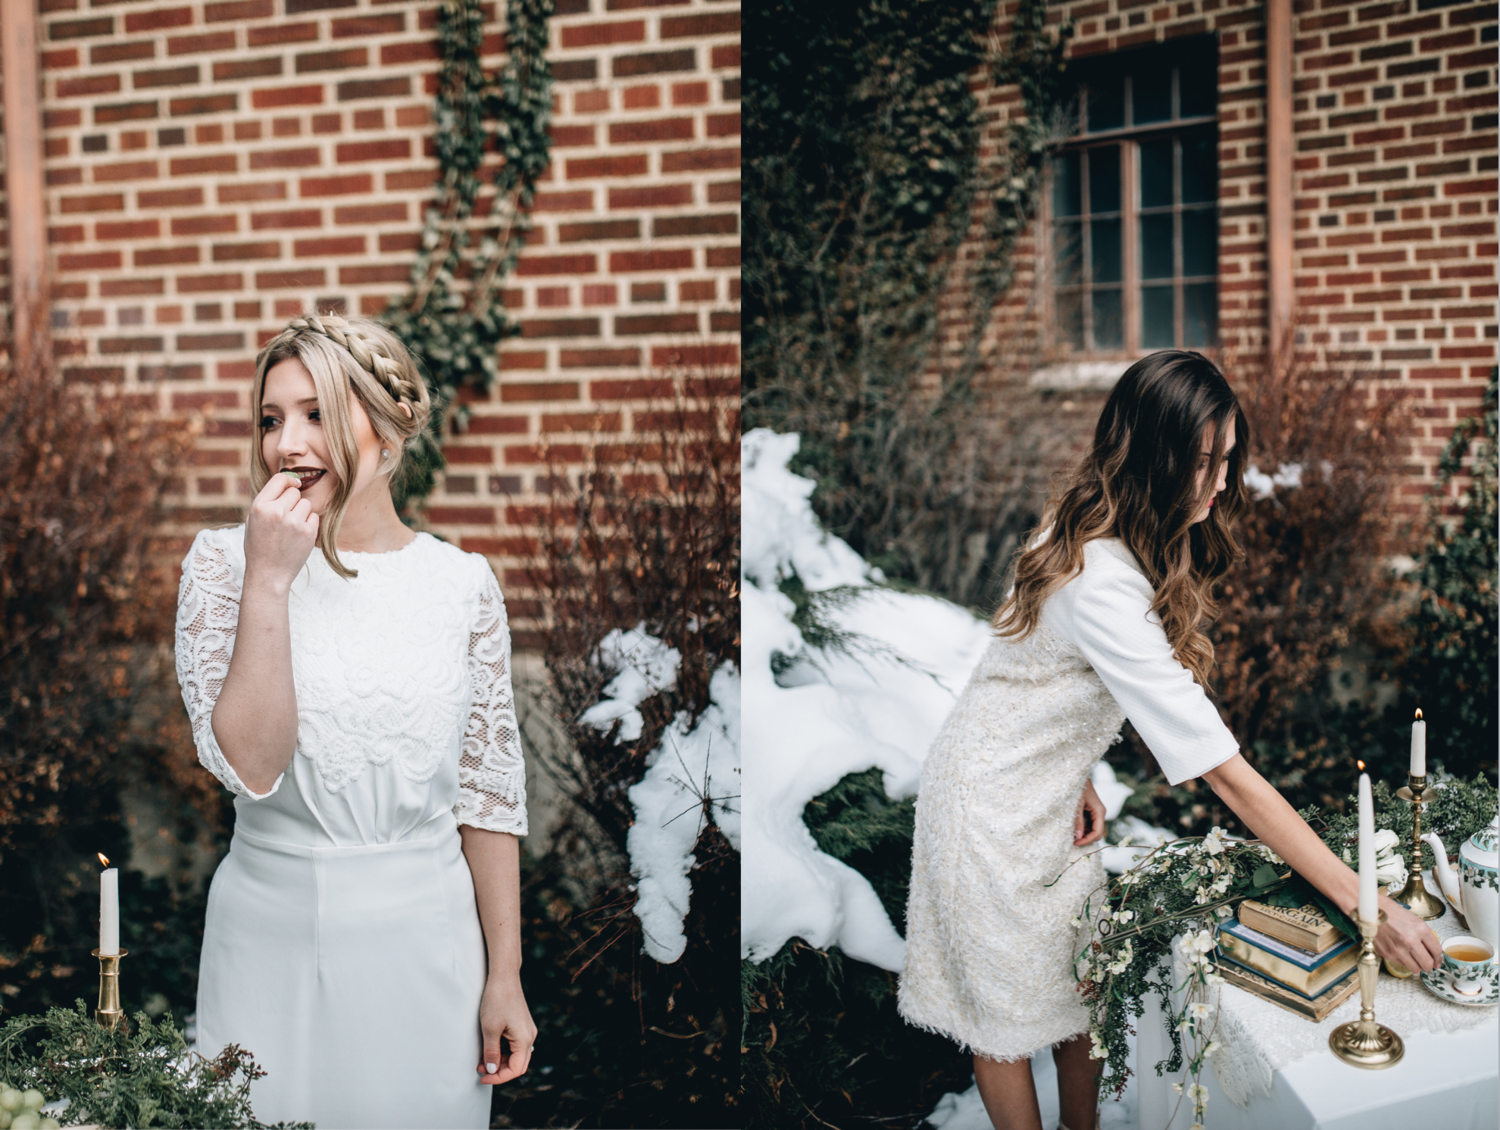 DETAILS  Styling by: Lucy Bergstrom  Photography by: Alice Cannon  Dresses by: Aleksandra Salo  Flutter Sleeve Top by: Natalie Wynn  Lace Skirt by: Janay Marie  Makeup by: Rachel Kae Jenkins  Rentals provided by: Refined Vintage Events  Models: Joan Brown & Josilyn Harsh